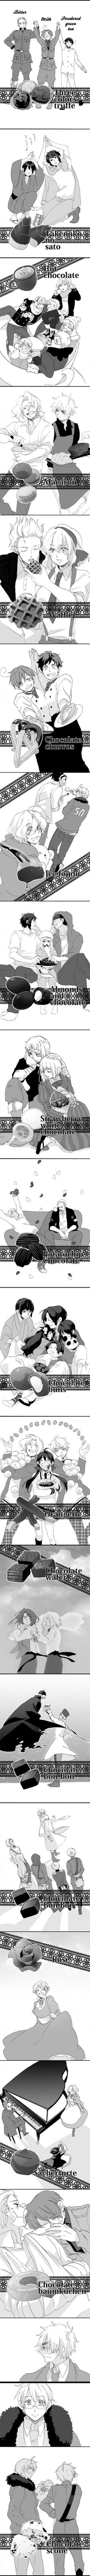 Tags: Anime, Chocolate, Axis Powers: Hetalia, Taiwan, Japan, Liechtenstein, Switzerland